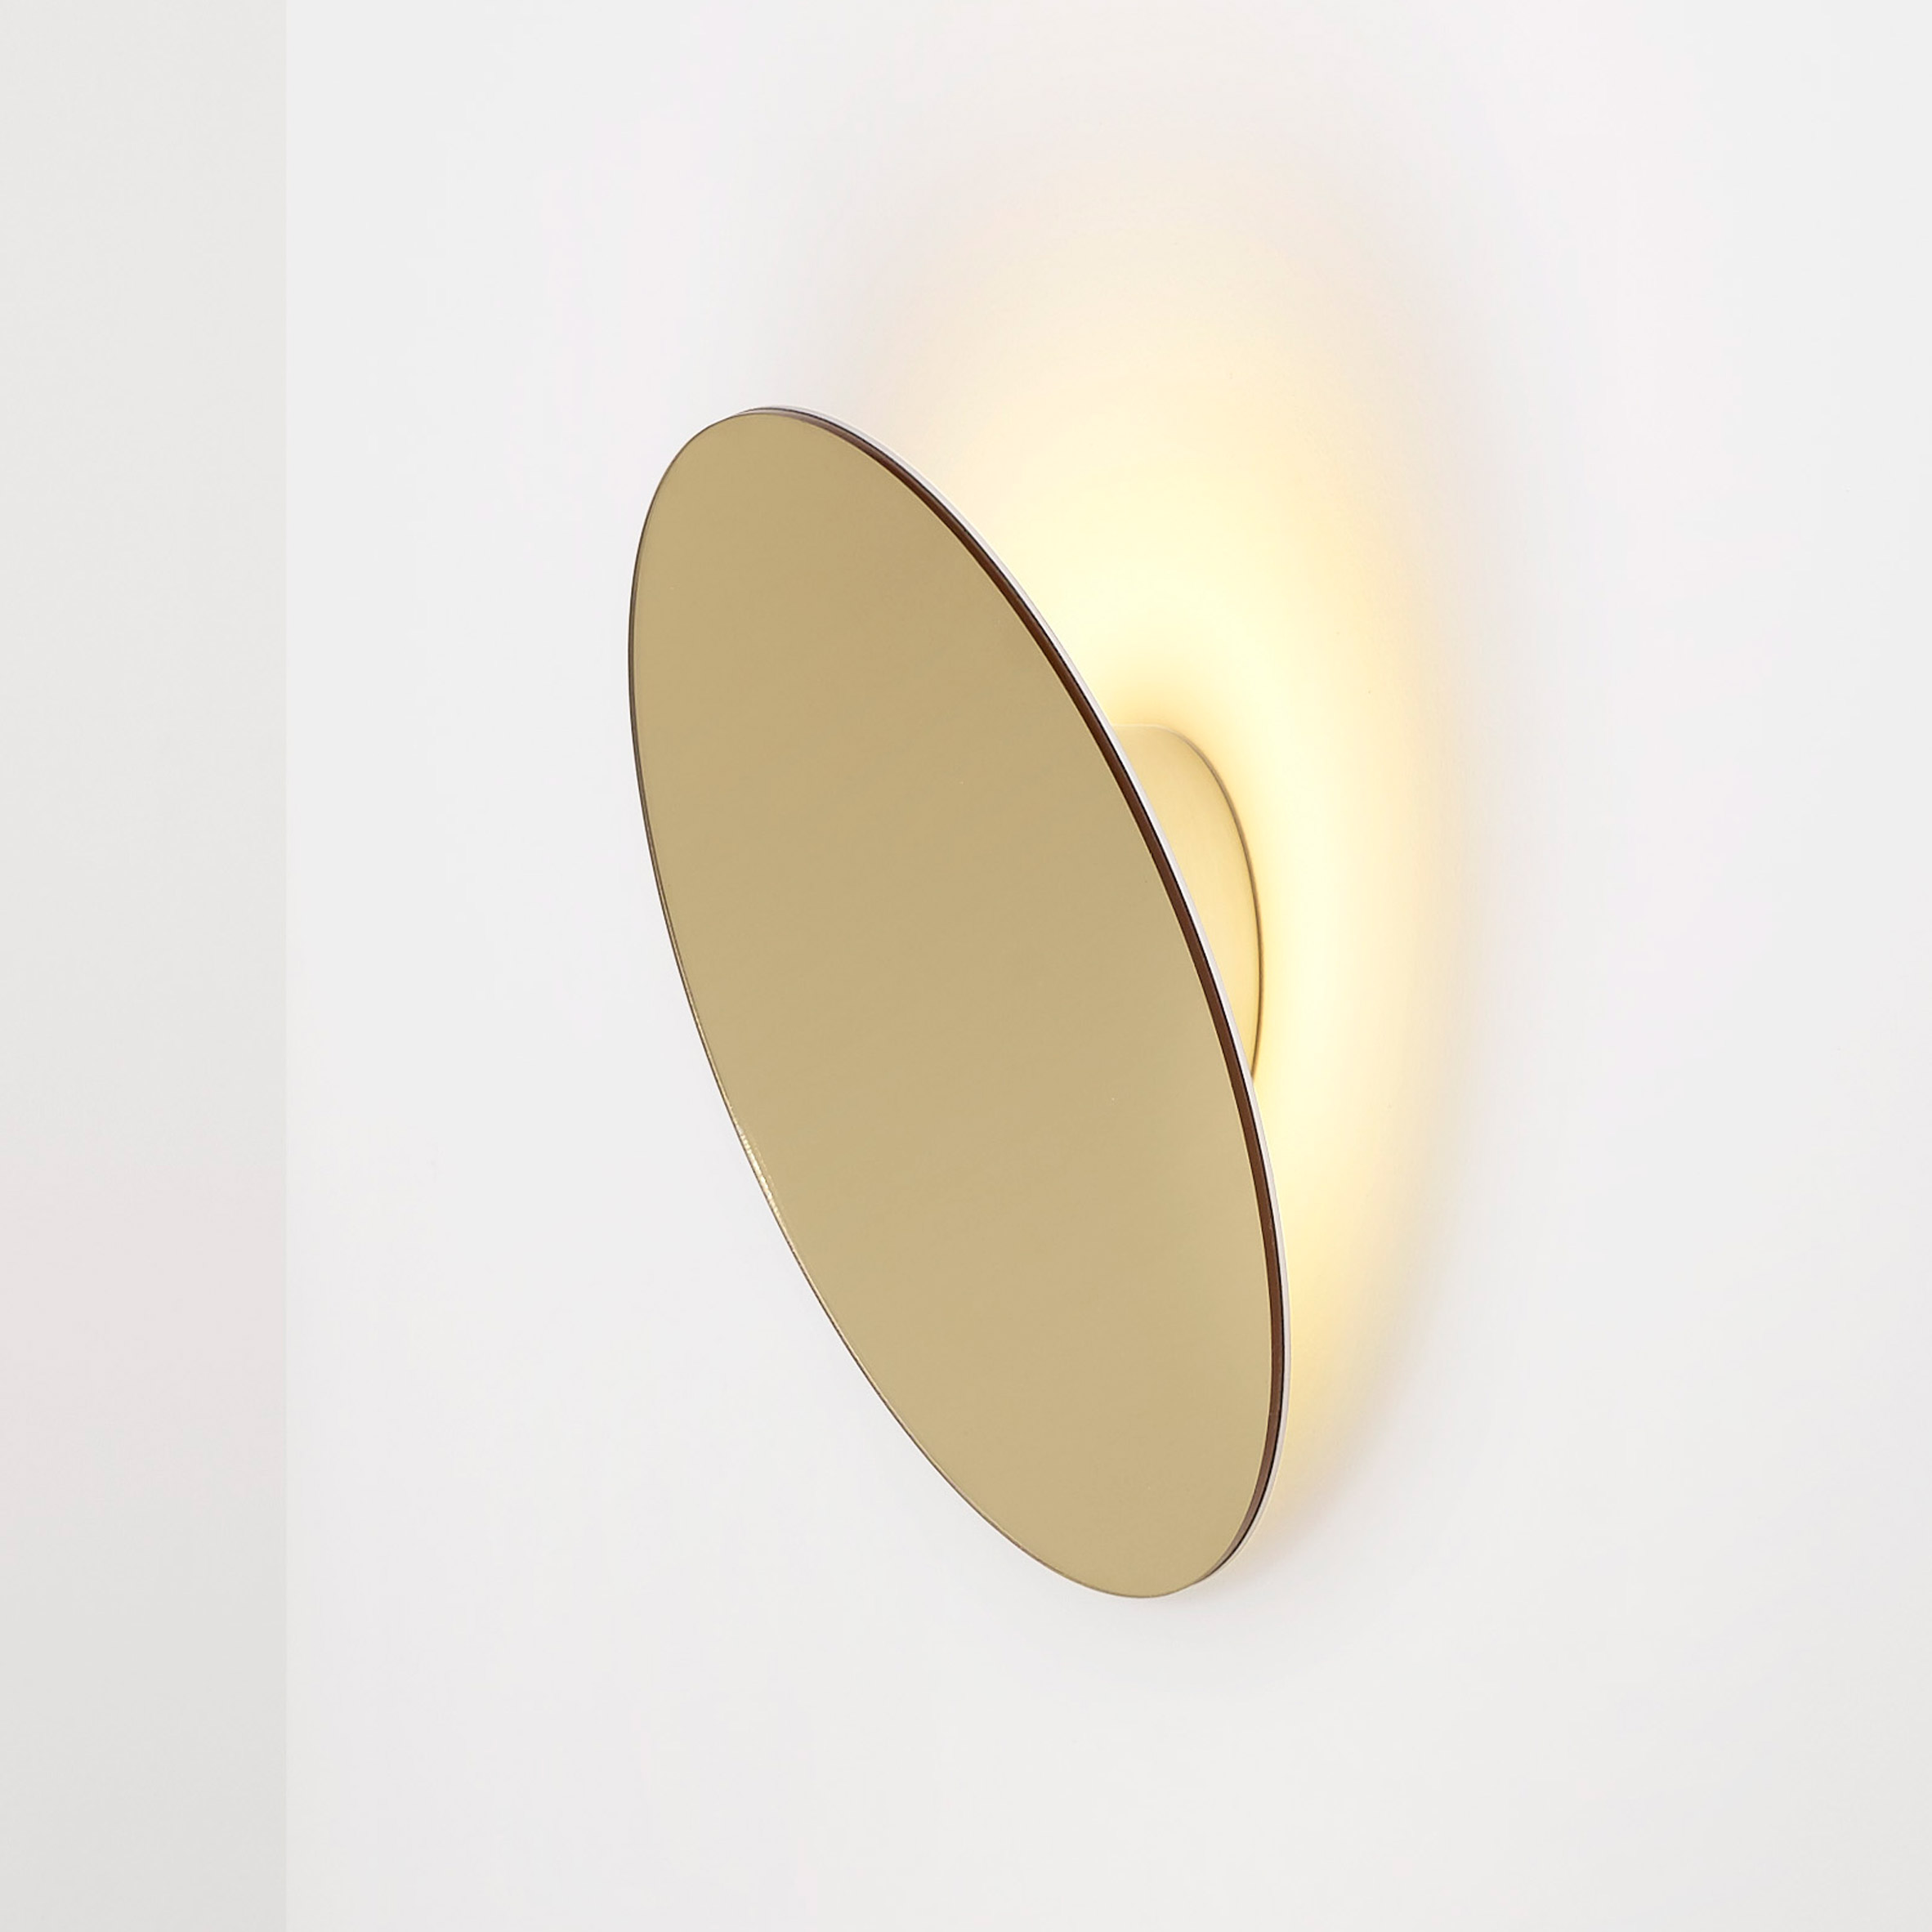 Ross Gardam's Polar wall lamp pivots to create rings of light